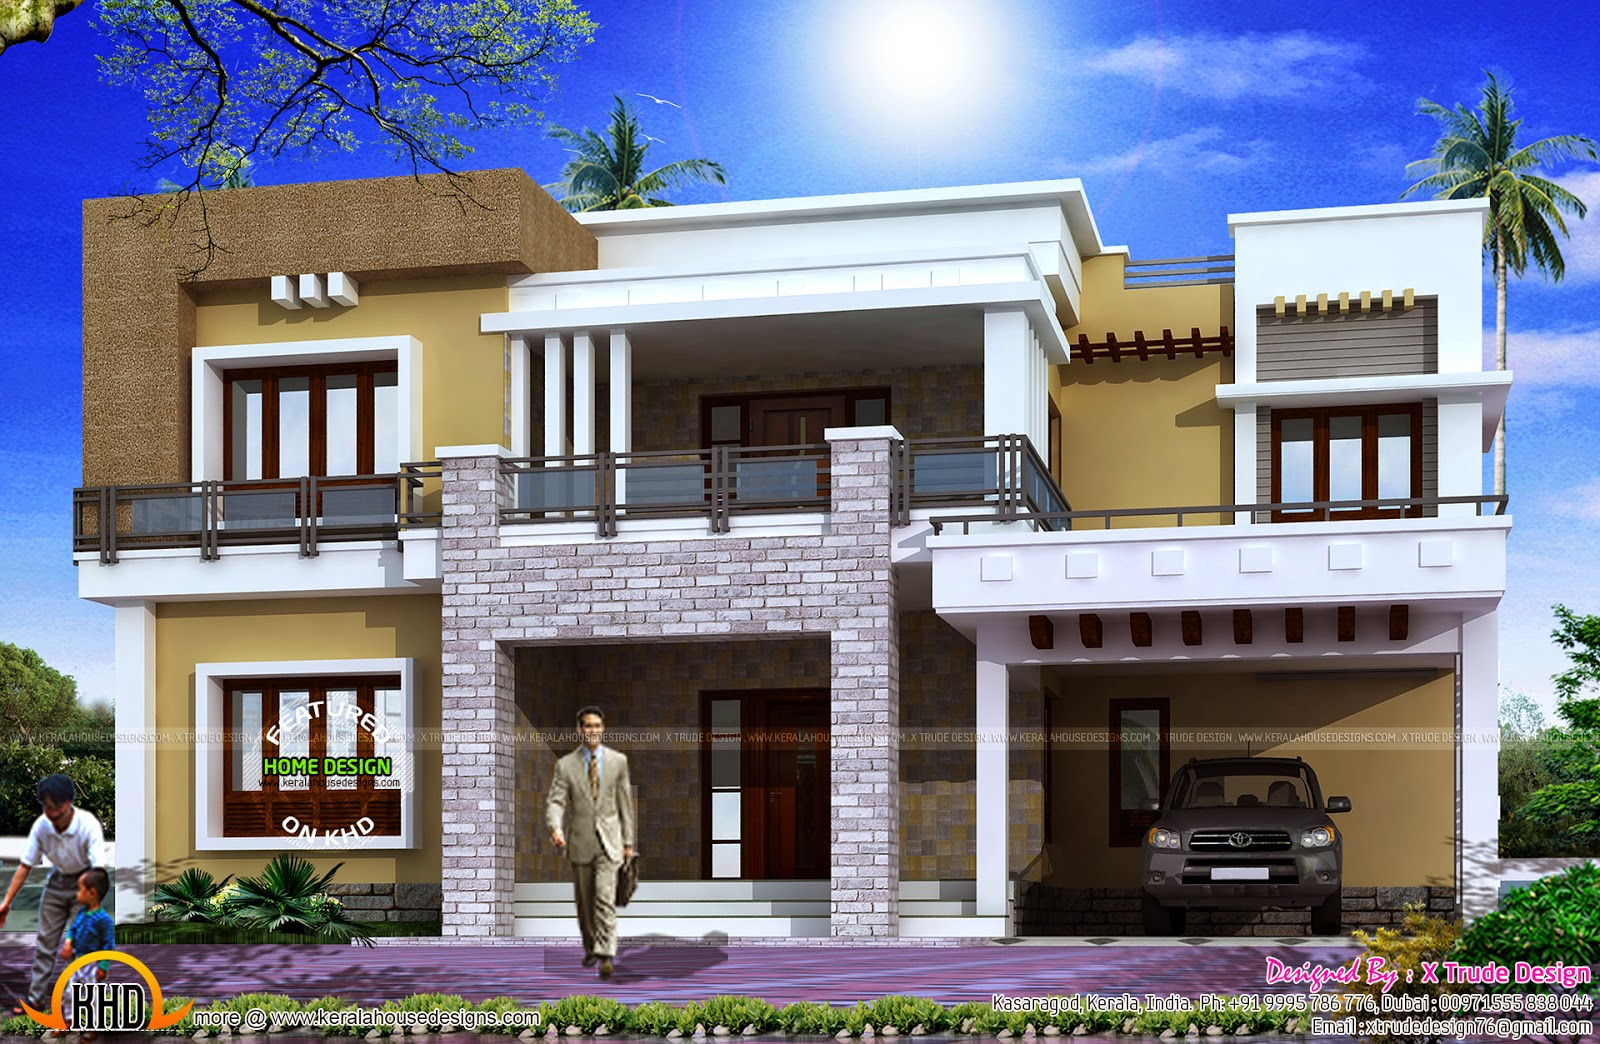 Keralahousedesigns july 2015 for One level house exterior design